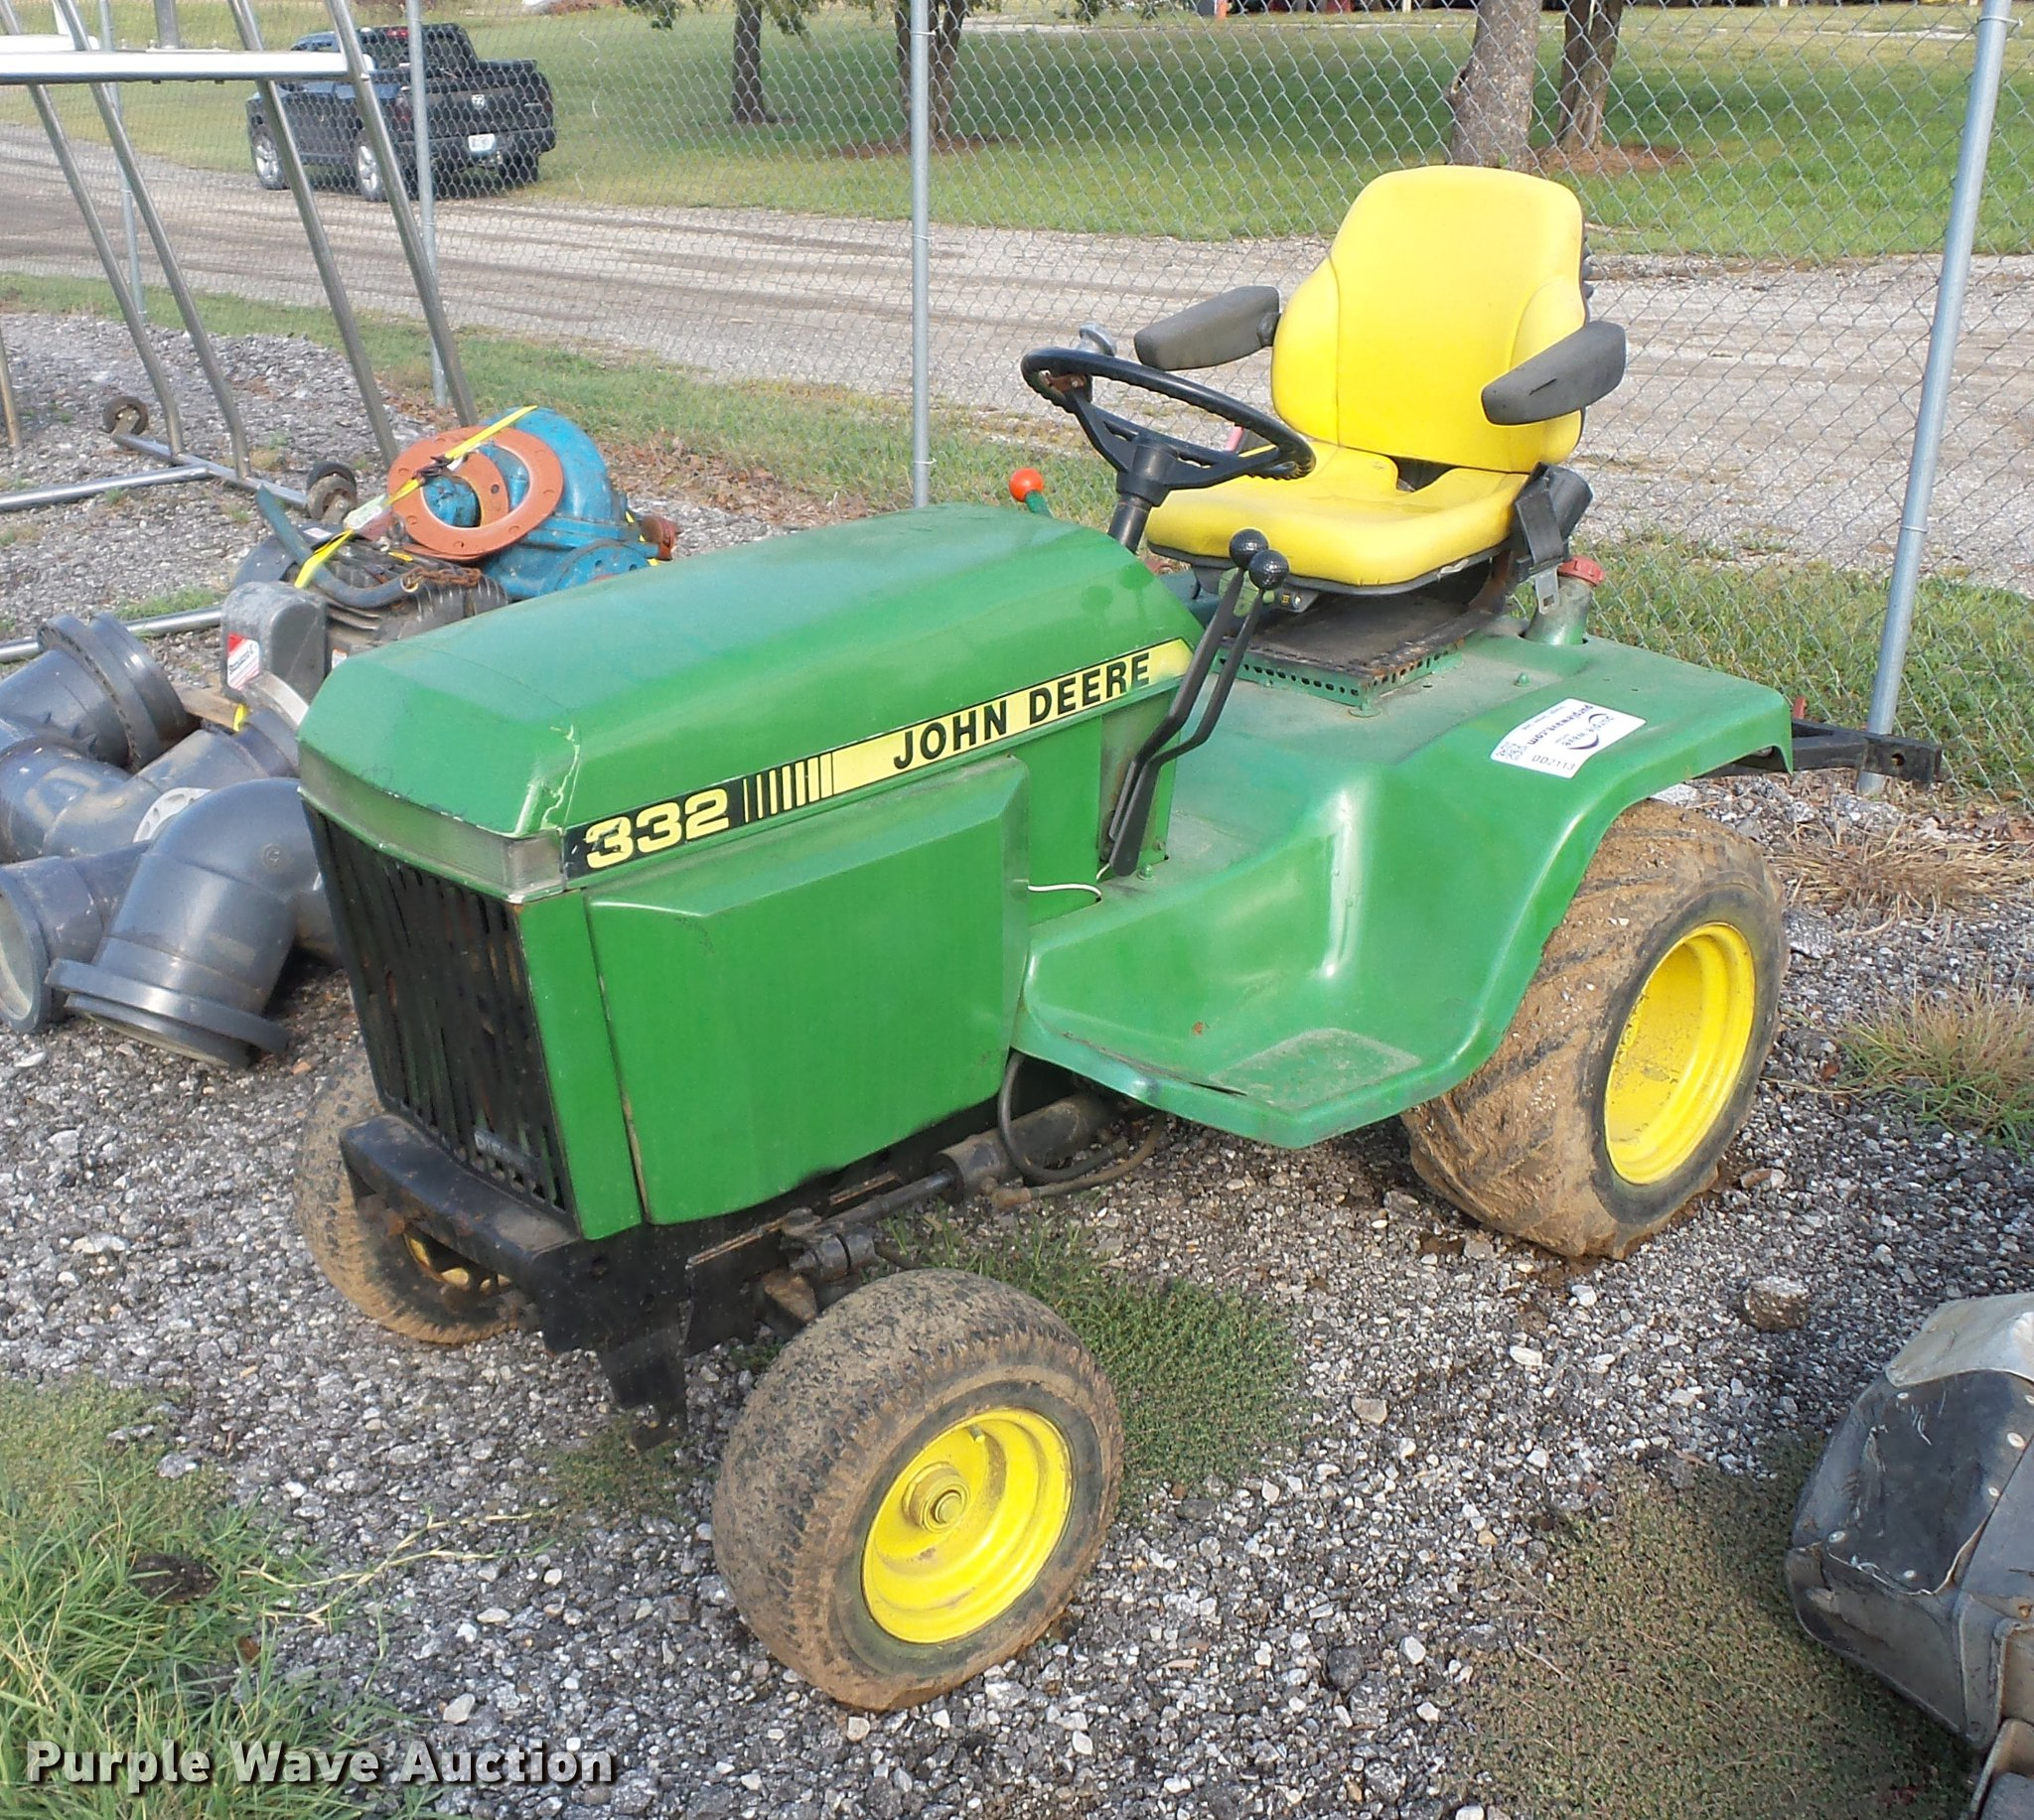 John Deere 332 >> John Deere 332 Lawn Tractor Item Dd2113 Sold October 25